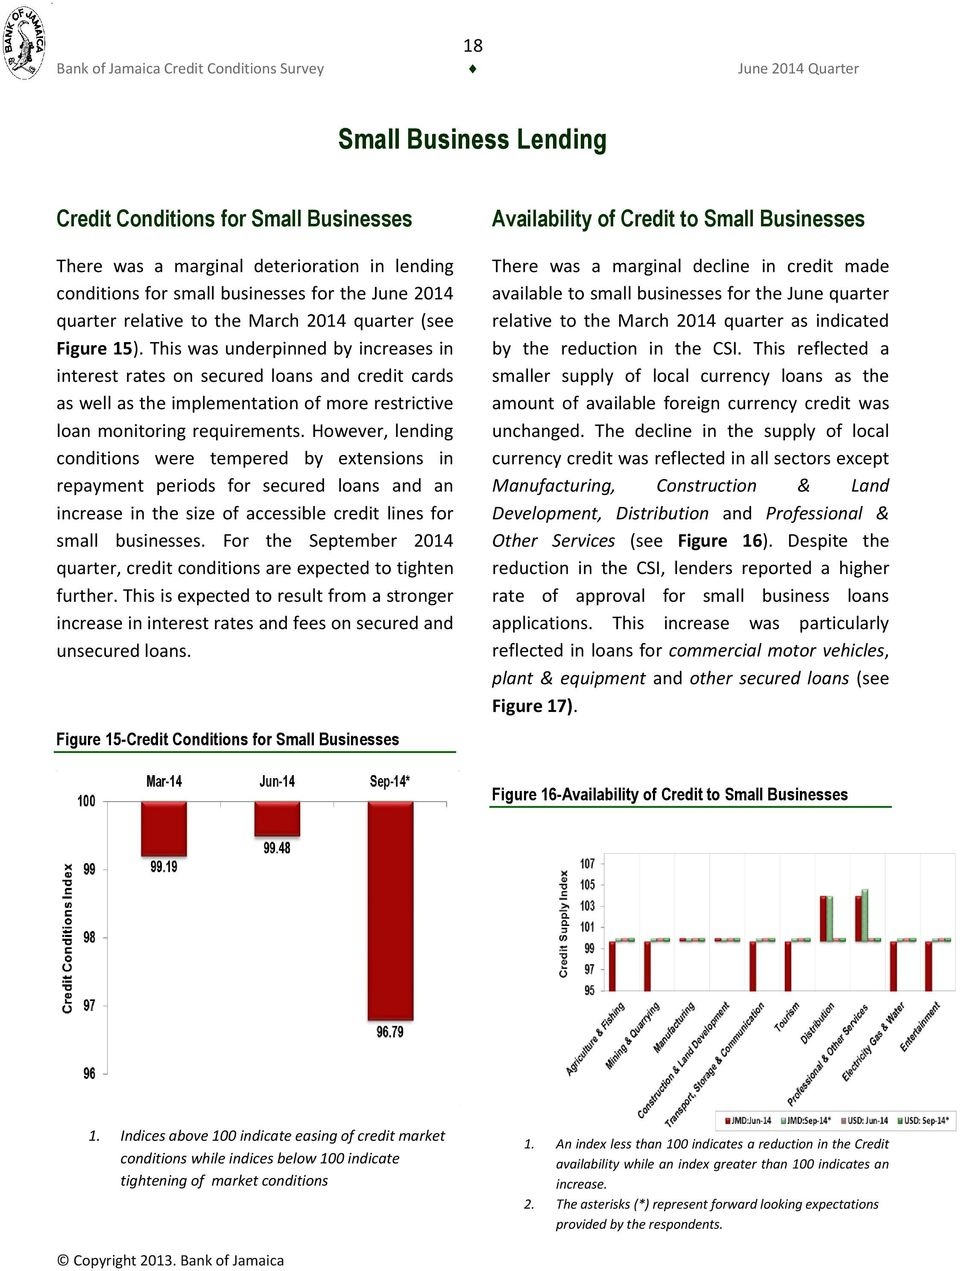 However, lending conditions were tempered by extensions in repayment periods for secured loans and an increase in the size of accessible credit lines for small businesses.